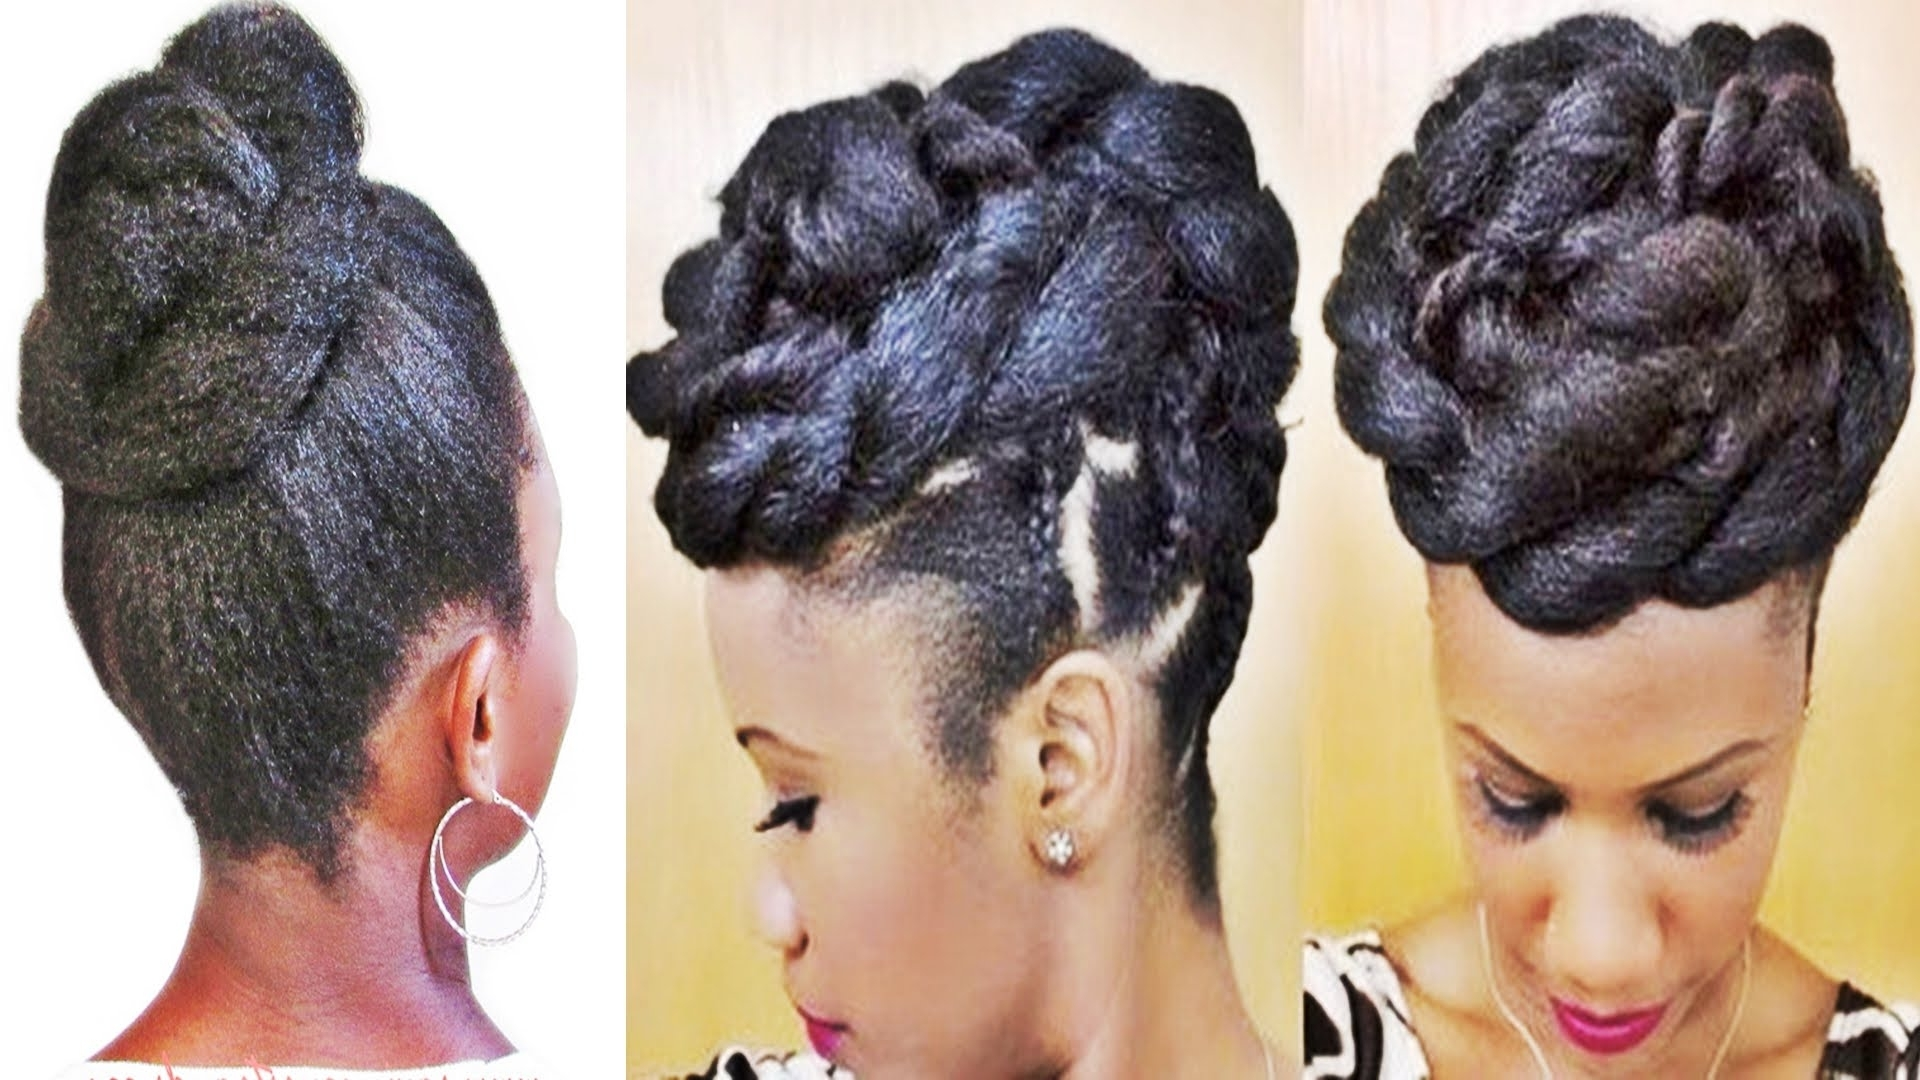 Braids And Twists Updo Hairstyle For Black Women – Youtube Pertaining To Kanekalon Hair Updo Hairstyles (View 2 of 15)